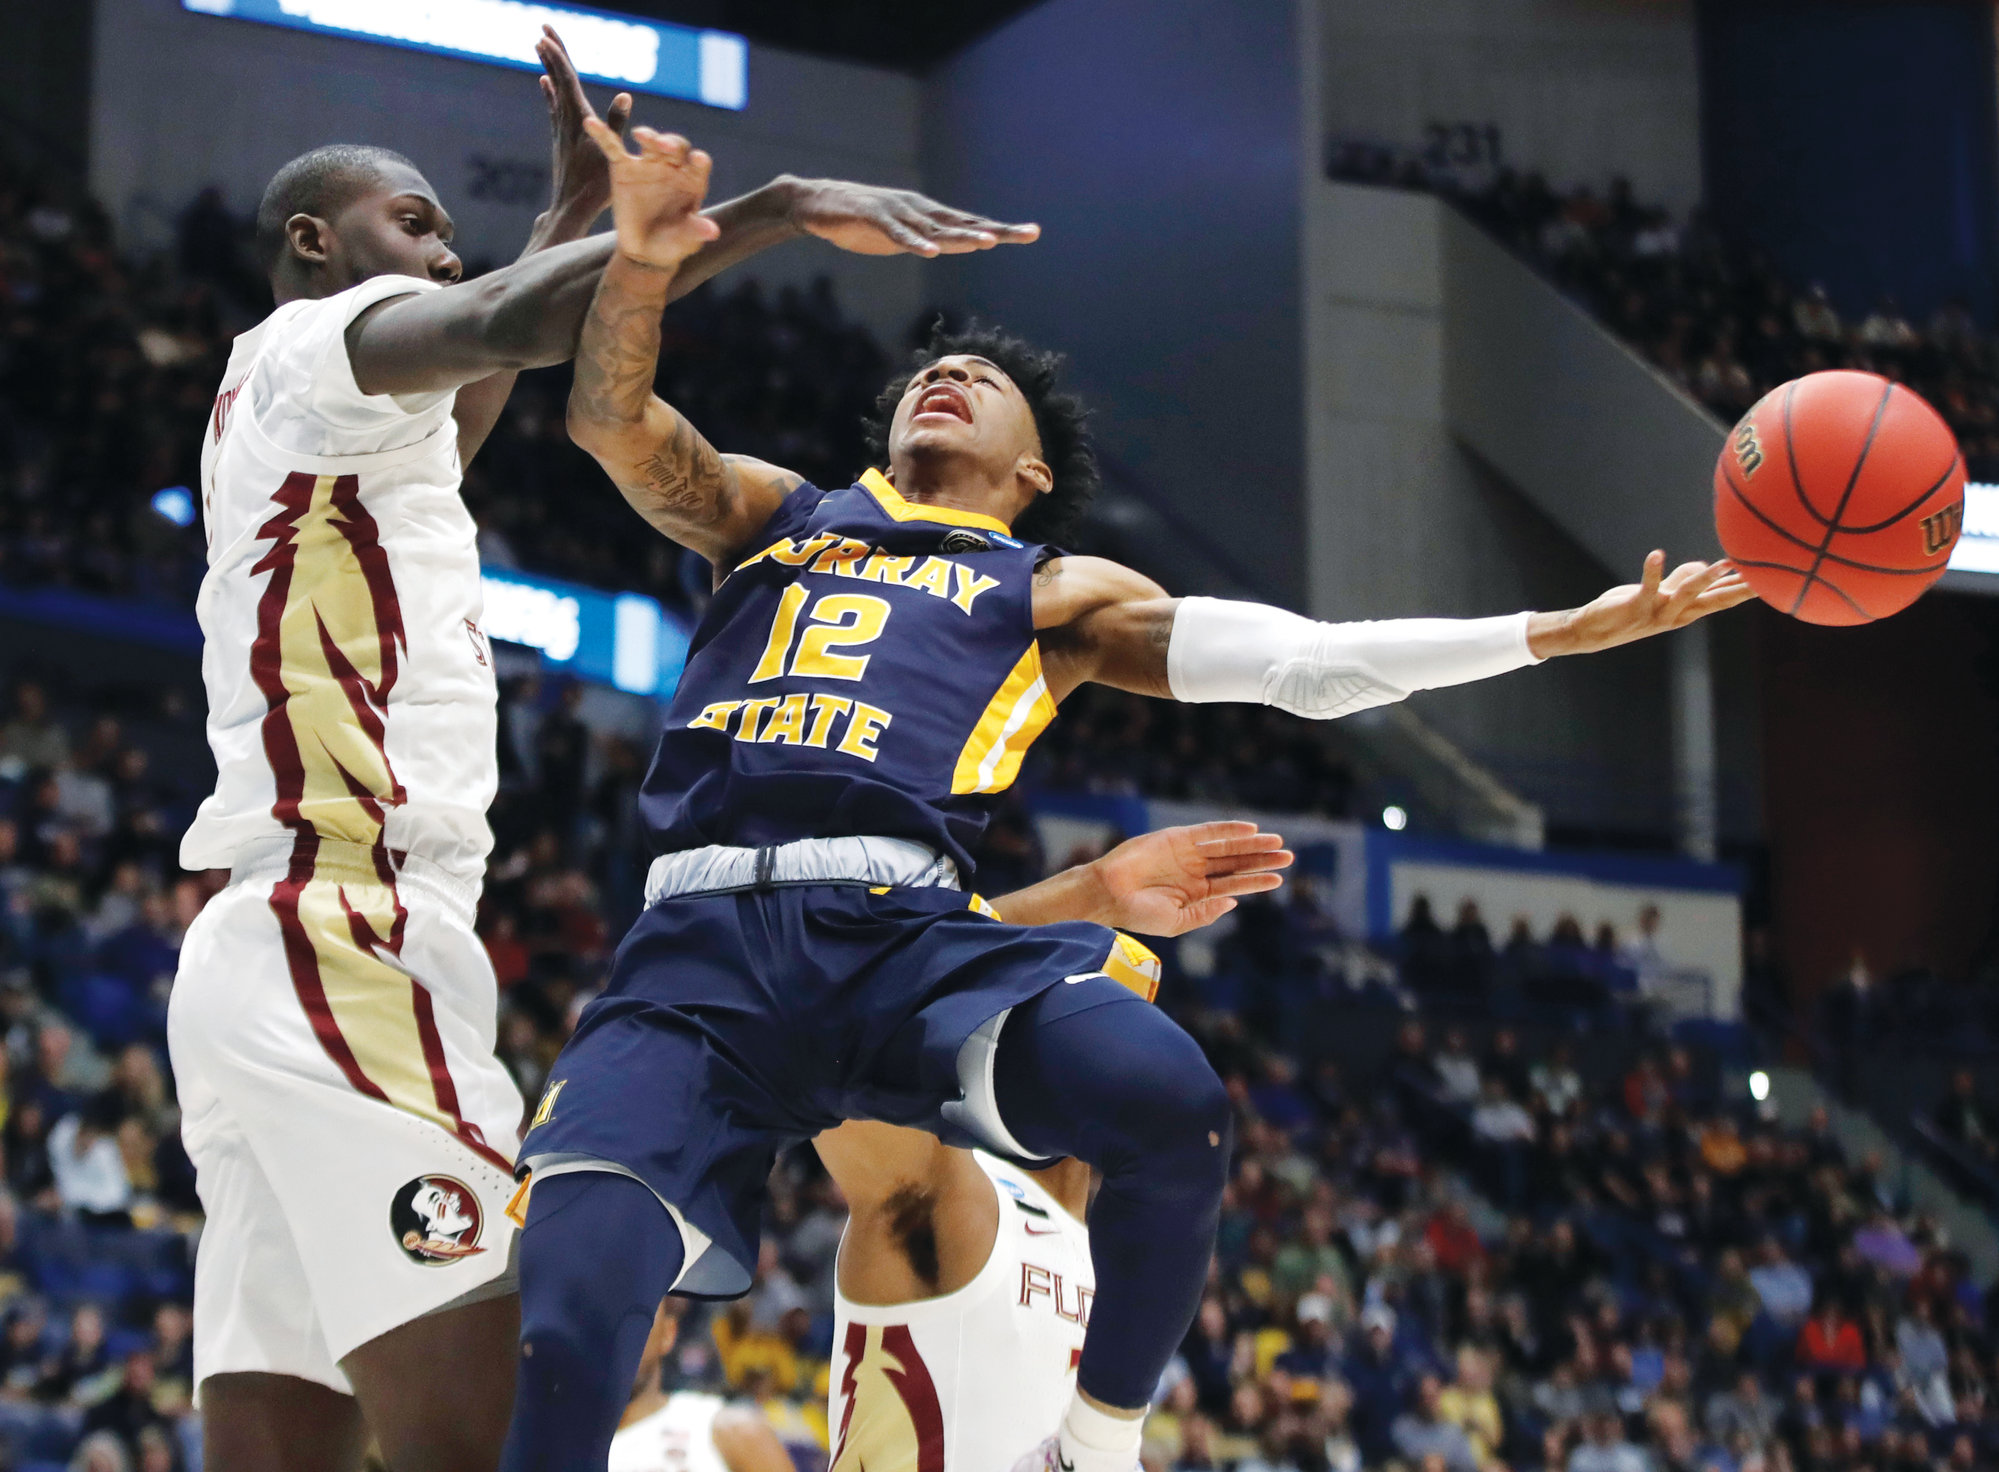 Murray State's Ja Morant (12), shown passing the ball during the Racers' NCAA Tournament game against Florida State, was named a first team All-American by The Associated Press on Tuesday. He is joined on the team by Duke's Zion Williamson and RJ Barrett, Tennessee's Grant Williams and Michigan State's Cassius Winston.